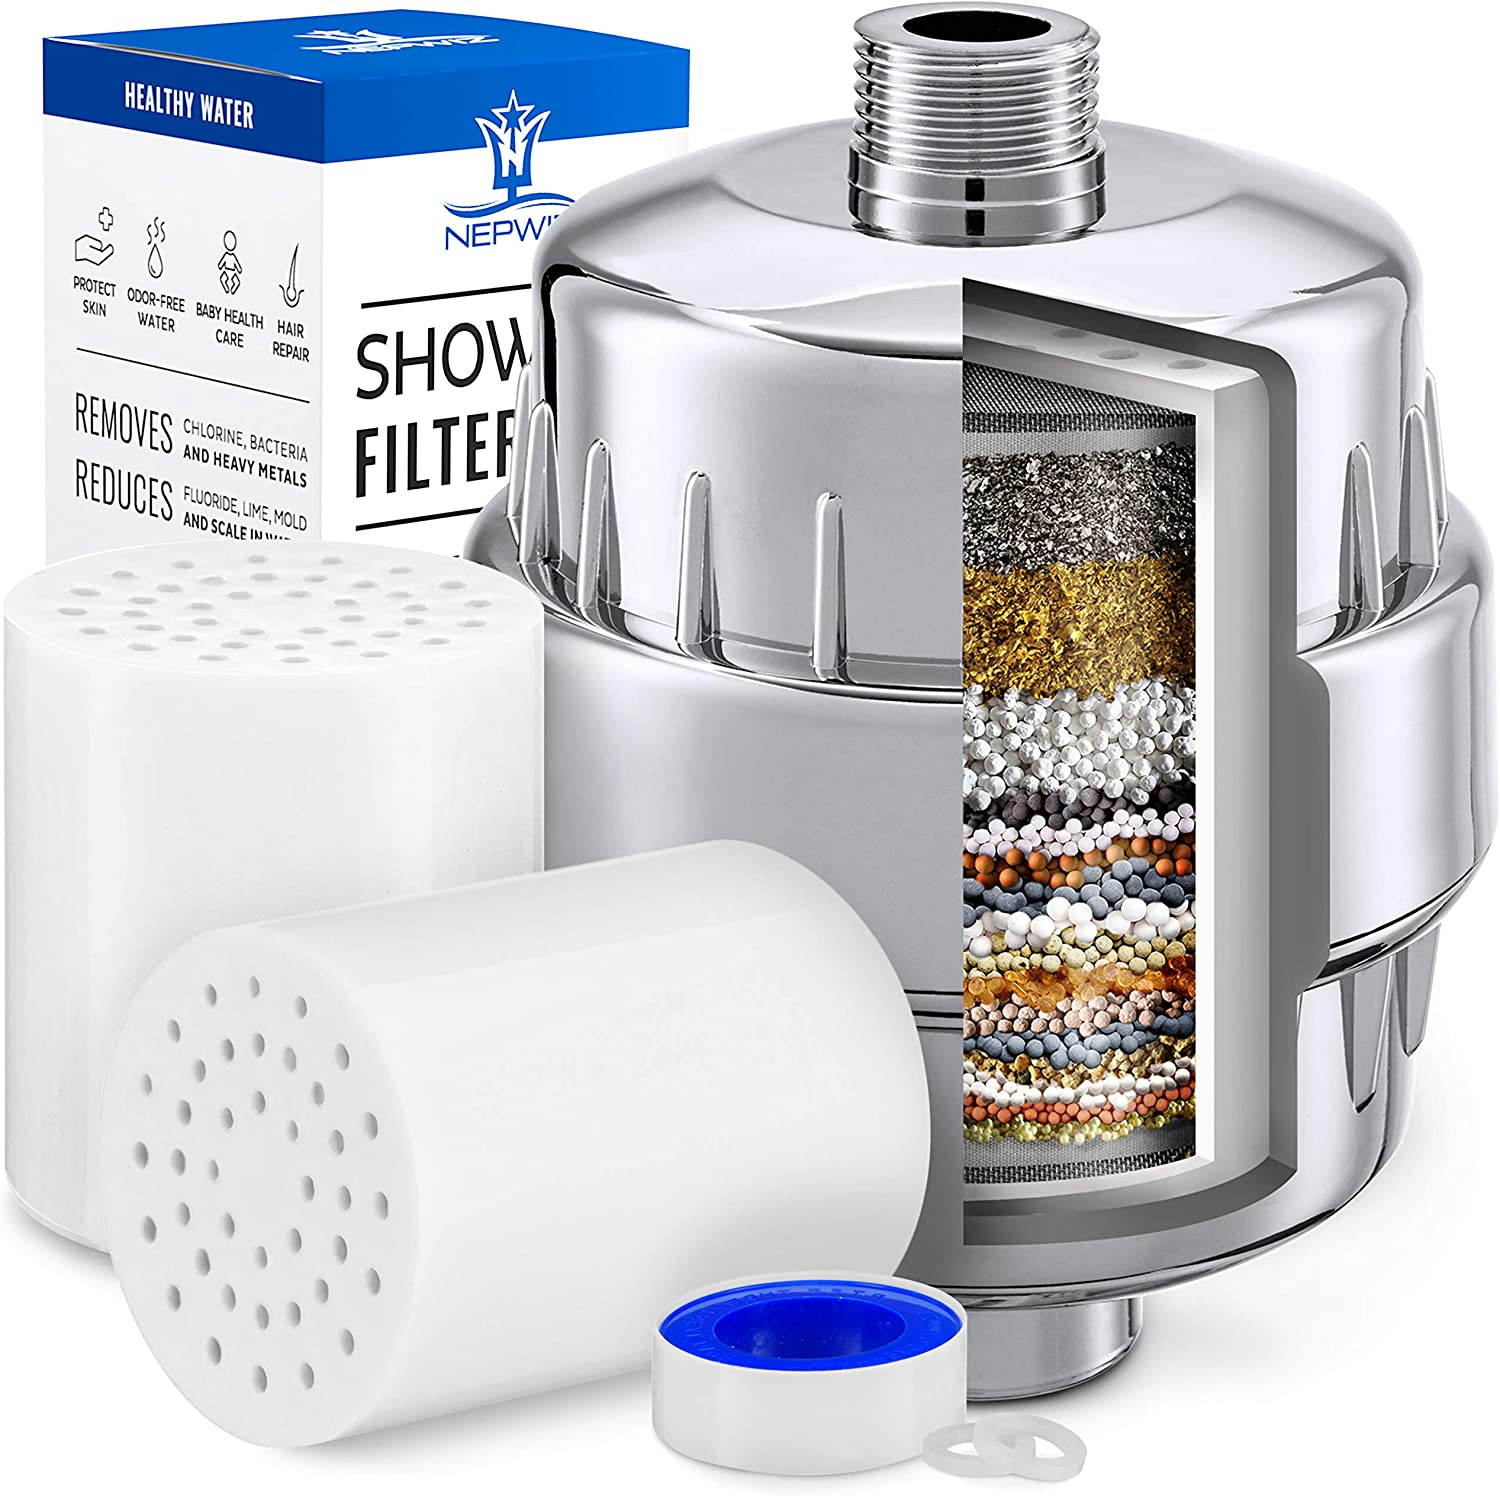 Shower Head Filter Removes Chlorine Fluoride and Improves The Condition of Your Skin BathBeyond Shower Filter Vitamin C 15 Stage High Output Water Filter With cartridge for Hard Water Hair